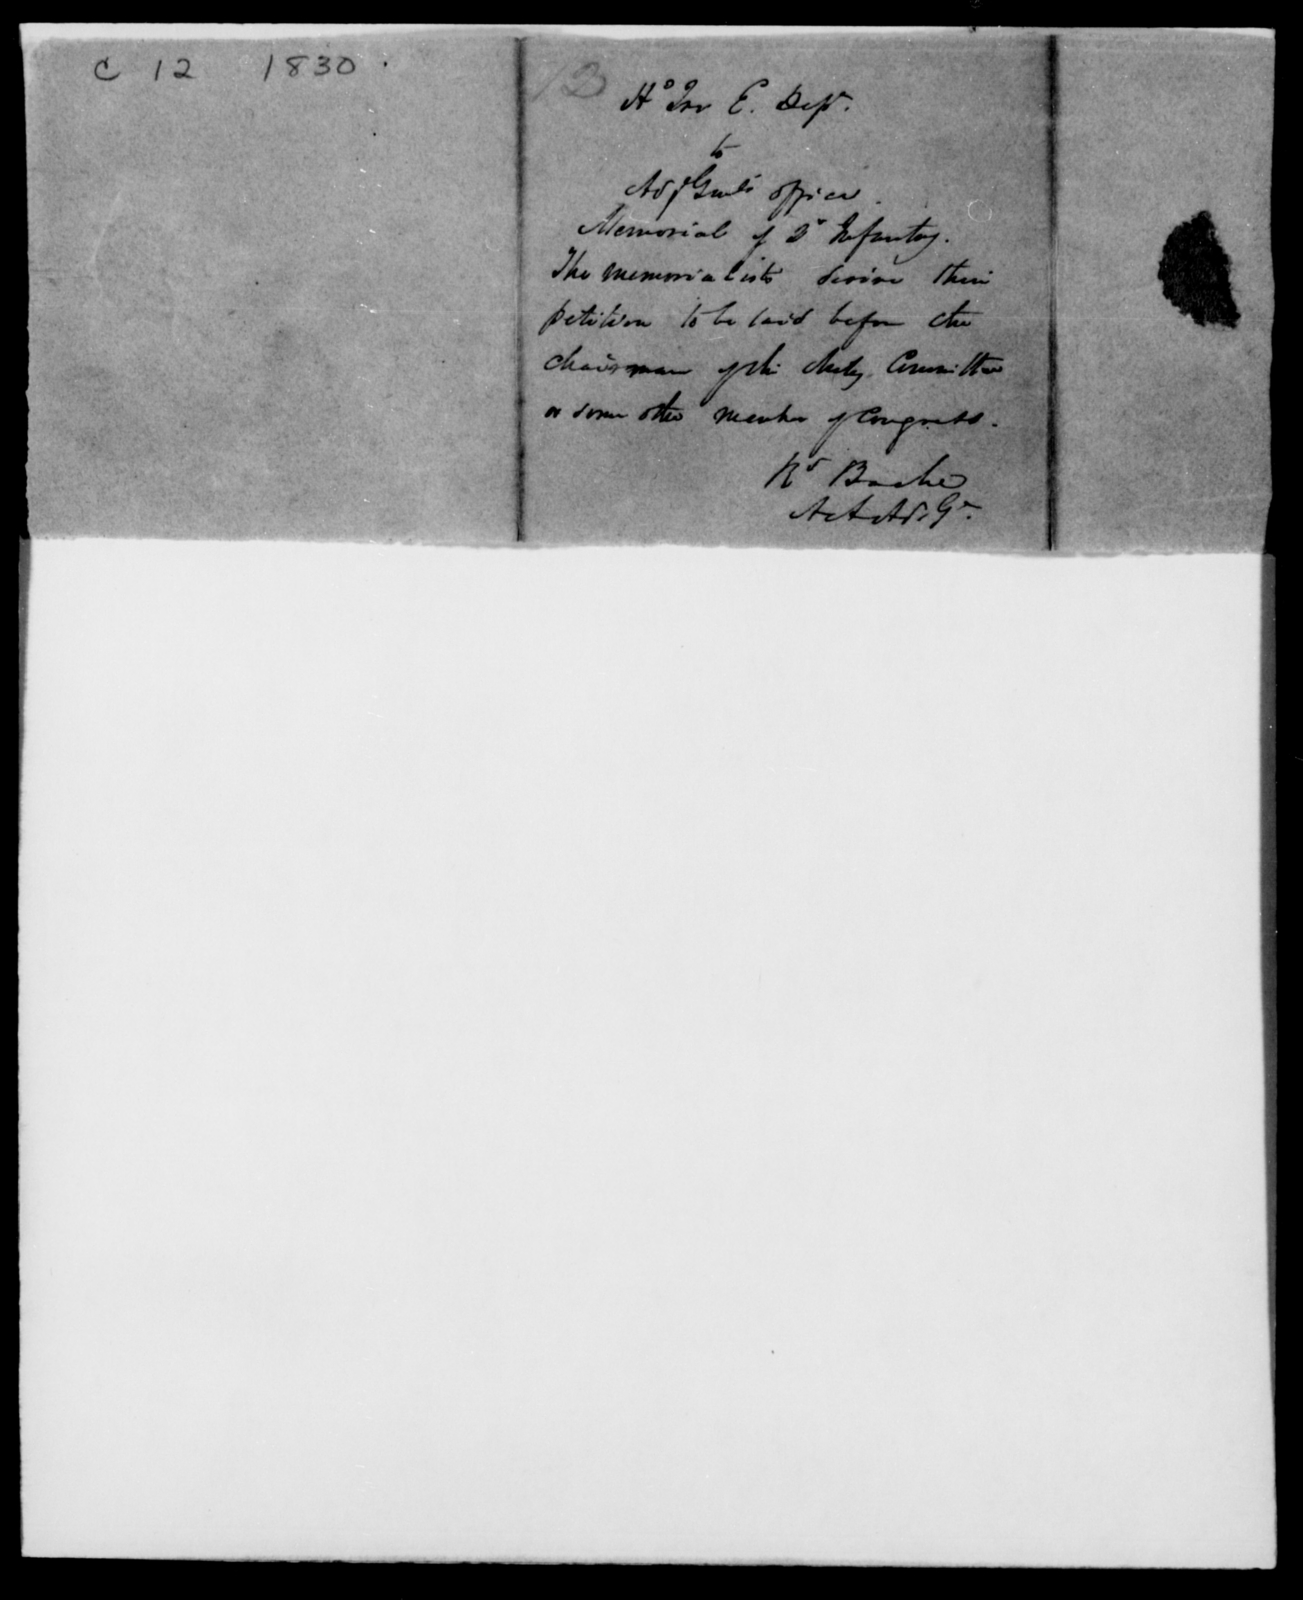 Cummings, Henry - State: [Blank] - Year: 1830 - File Number: C12